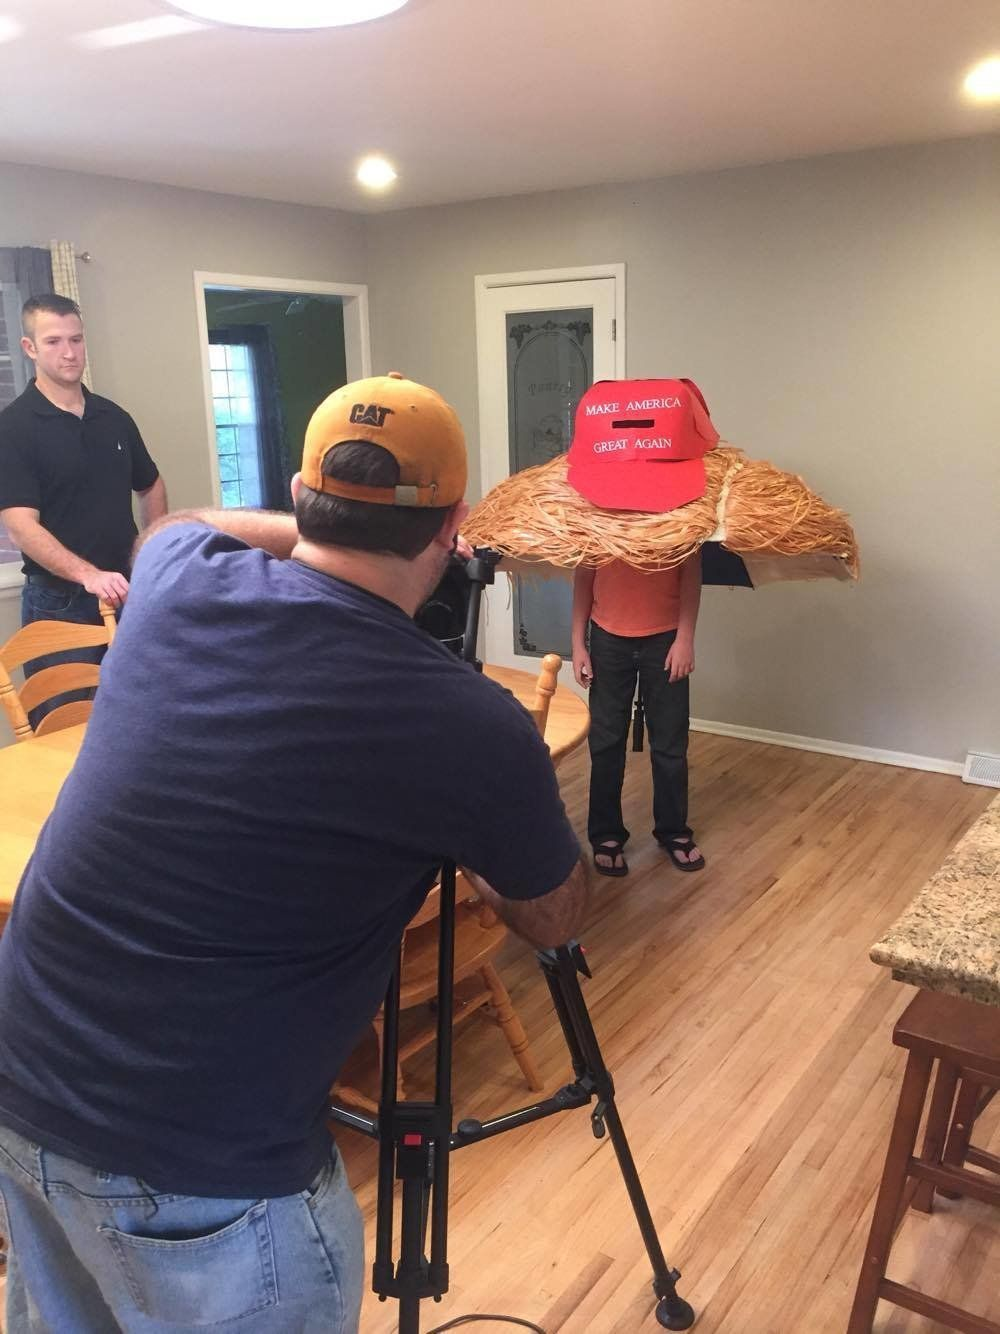 """The giant """"Make America Great Again"""" hat is madeof poster board."""